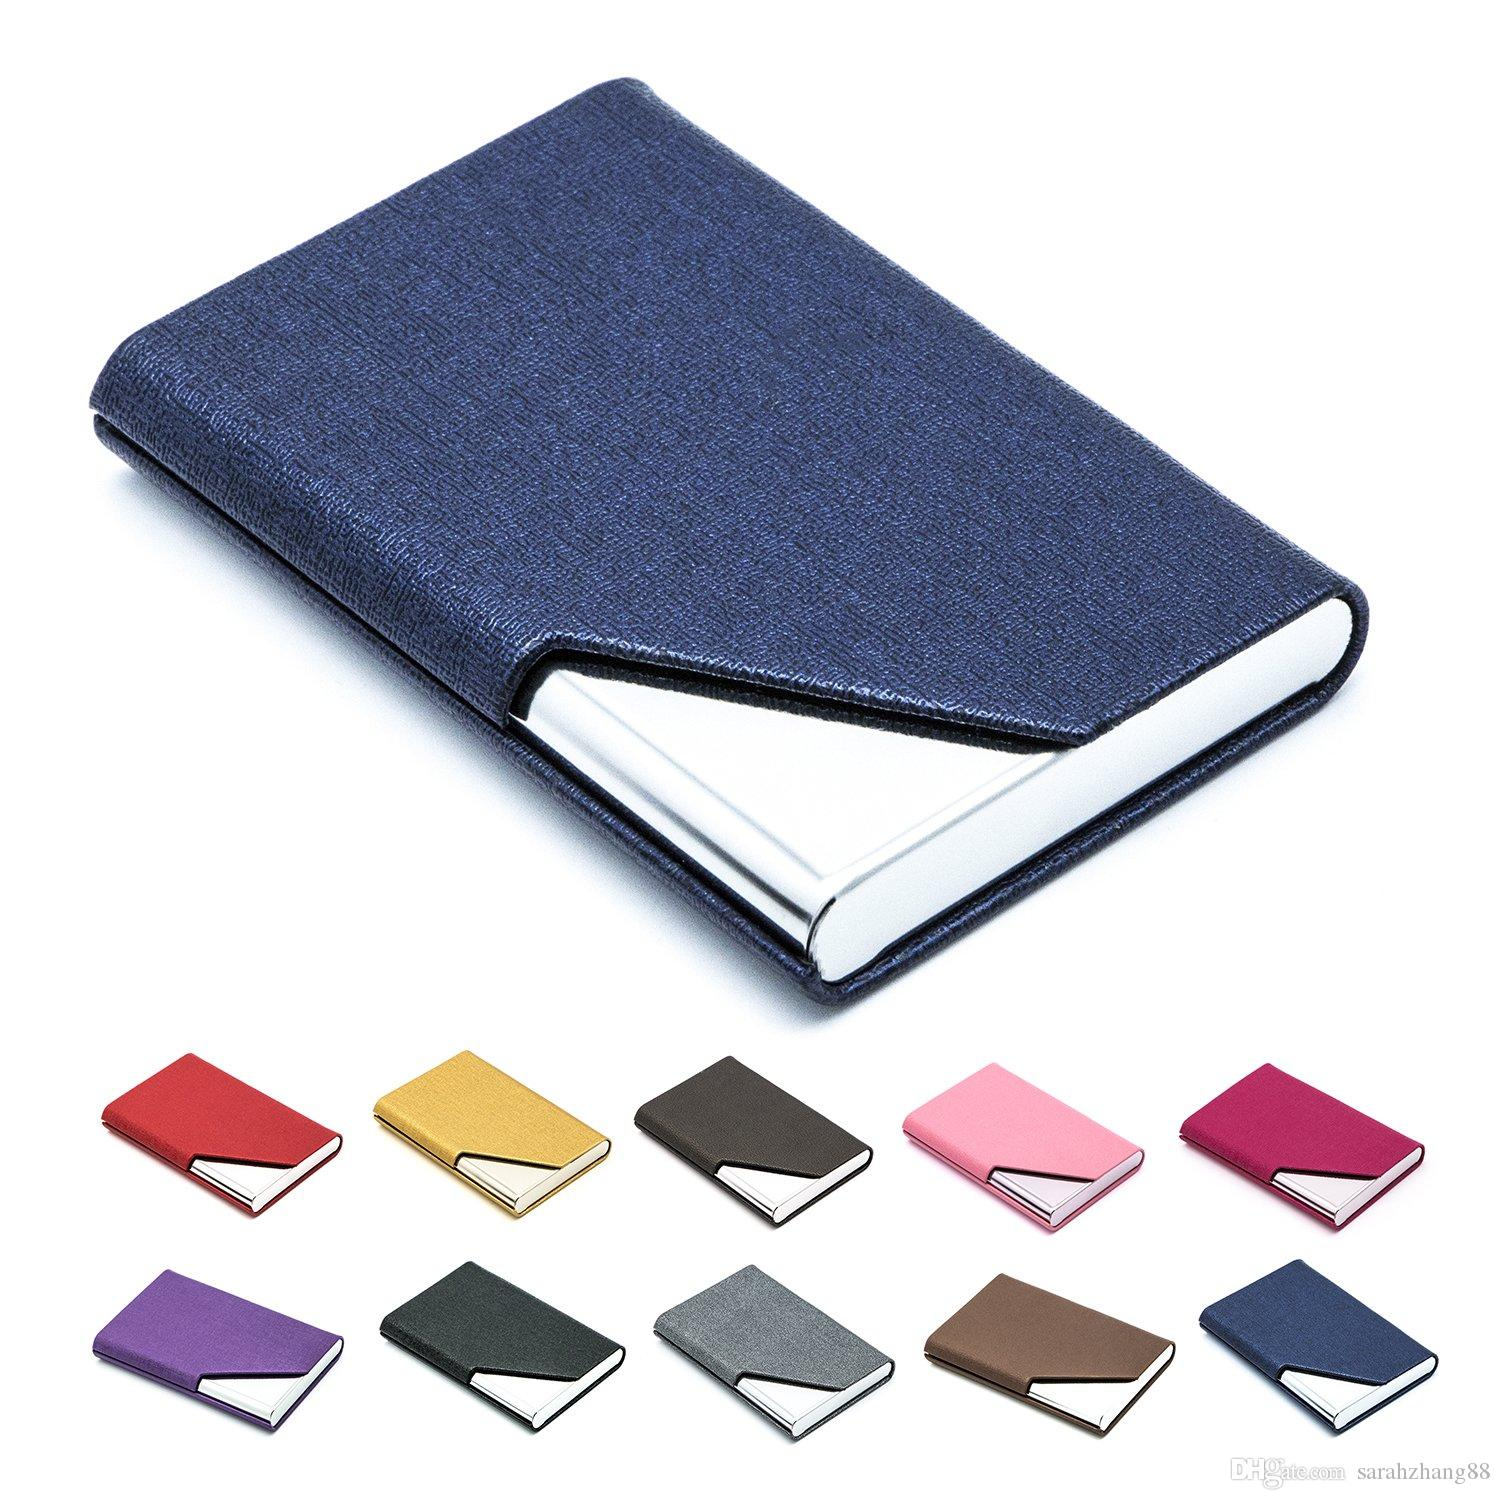 Business Name Card Holder Luxury PU Leather & Stainless Steel Multi Card Case,Business Name Card Holder Wallet for Men & Women